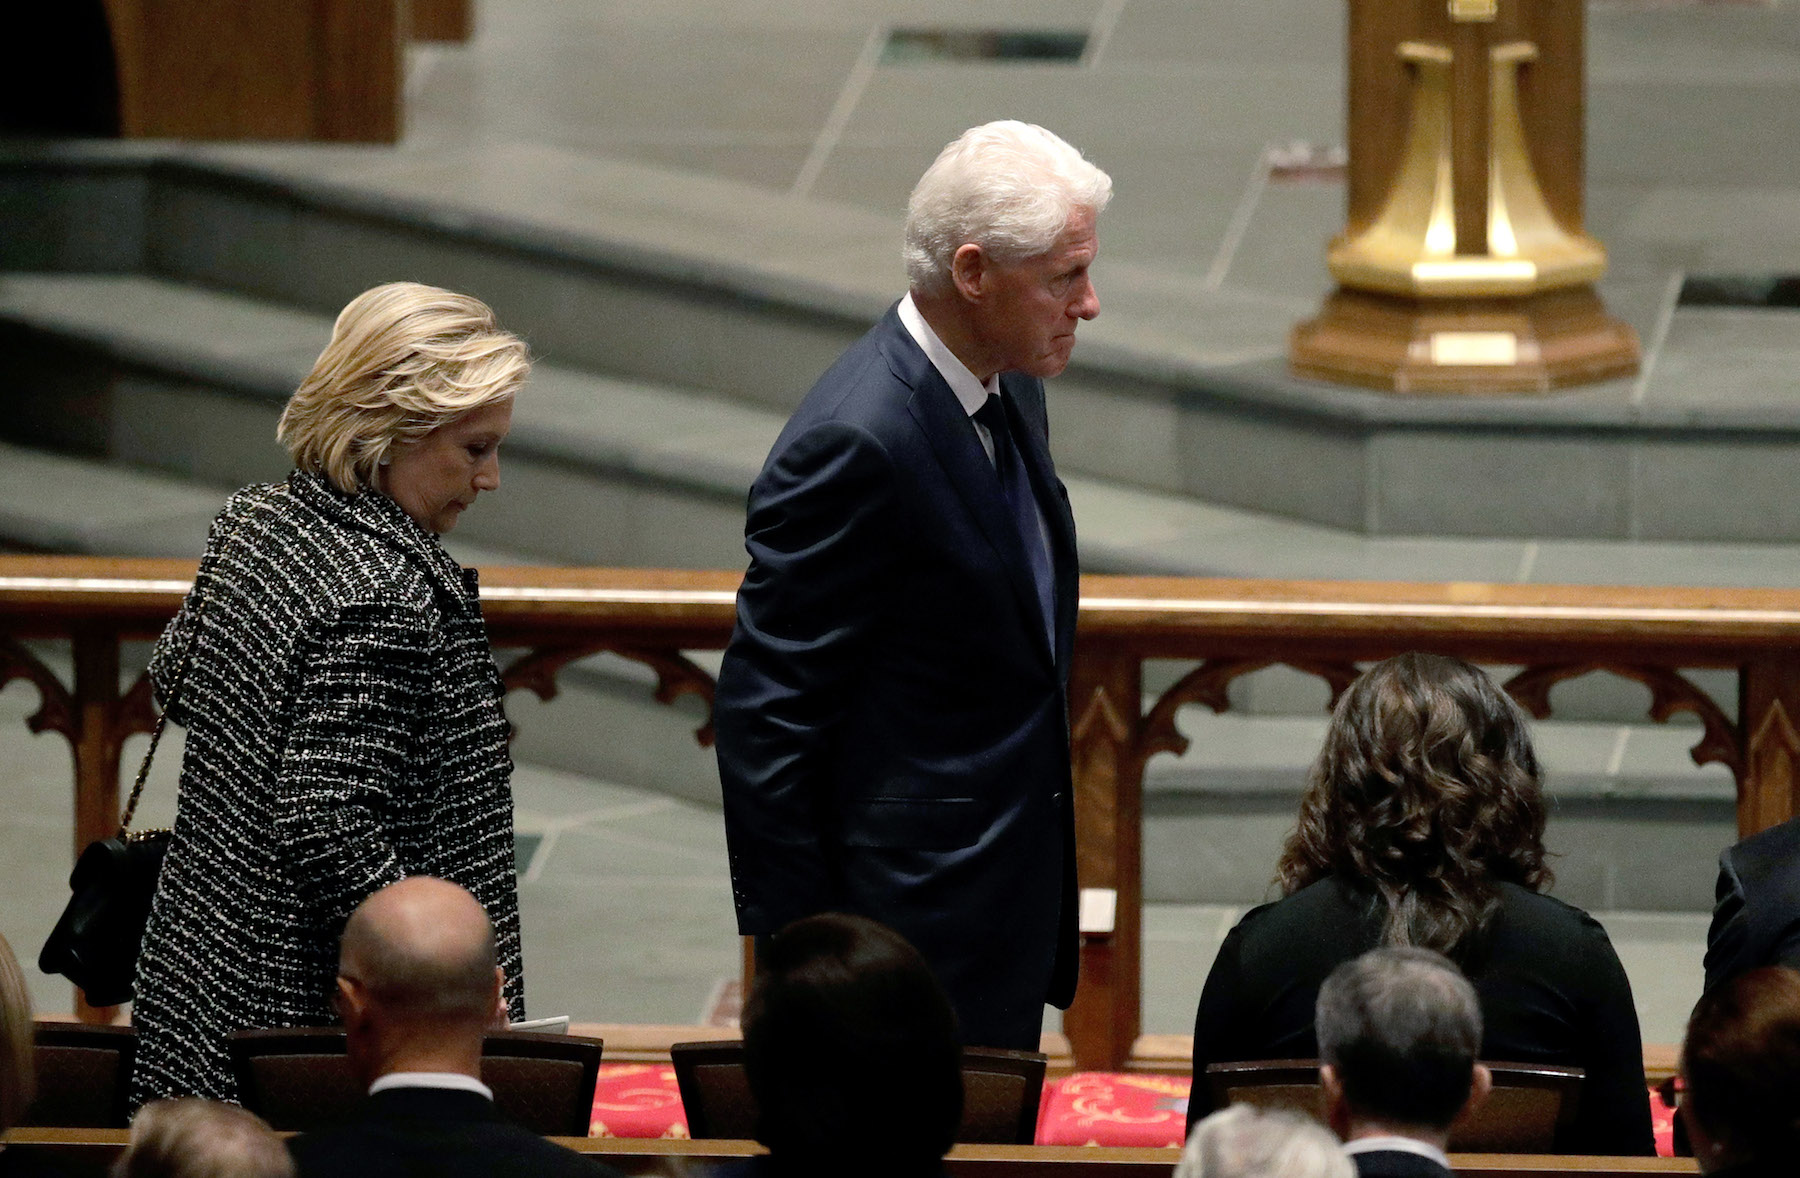 <div class='meta'><div class='origin-logo' data-origin='none'></div><span class='caption-text' data-credit='David J. Phillip-Pool/Getty Images'>Accompanied by his wife, Hillary Clinton,left, former President Bill Clinton arrives at St. Martin's Episcopal Church.</span></div>